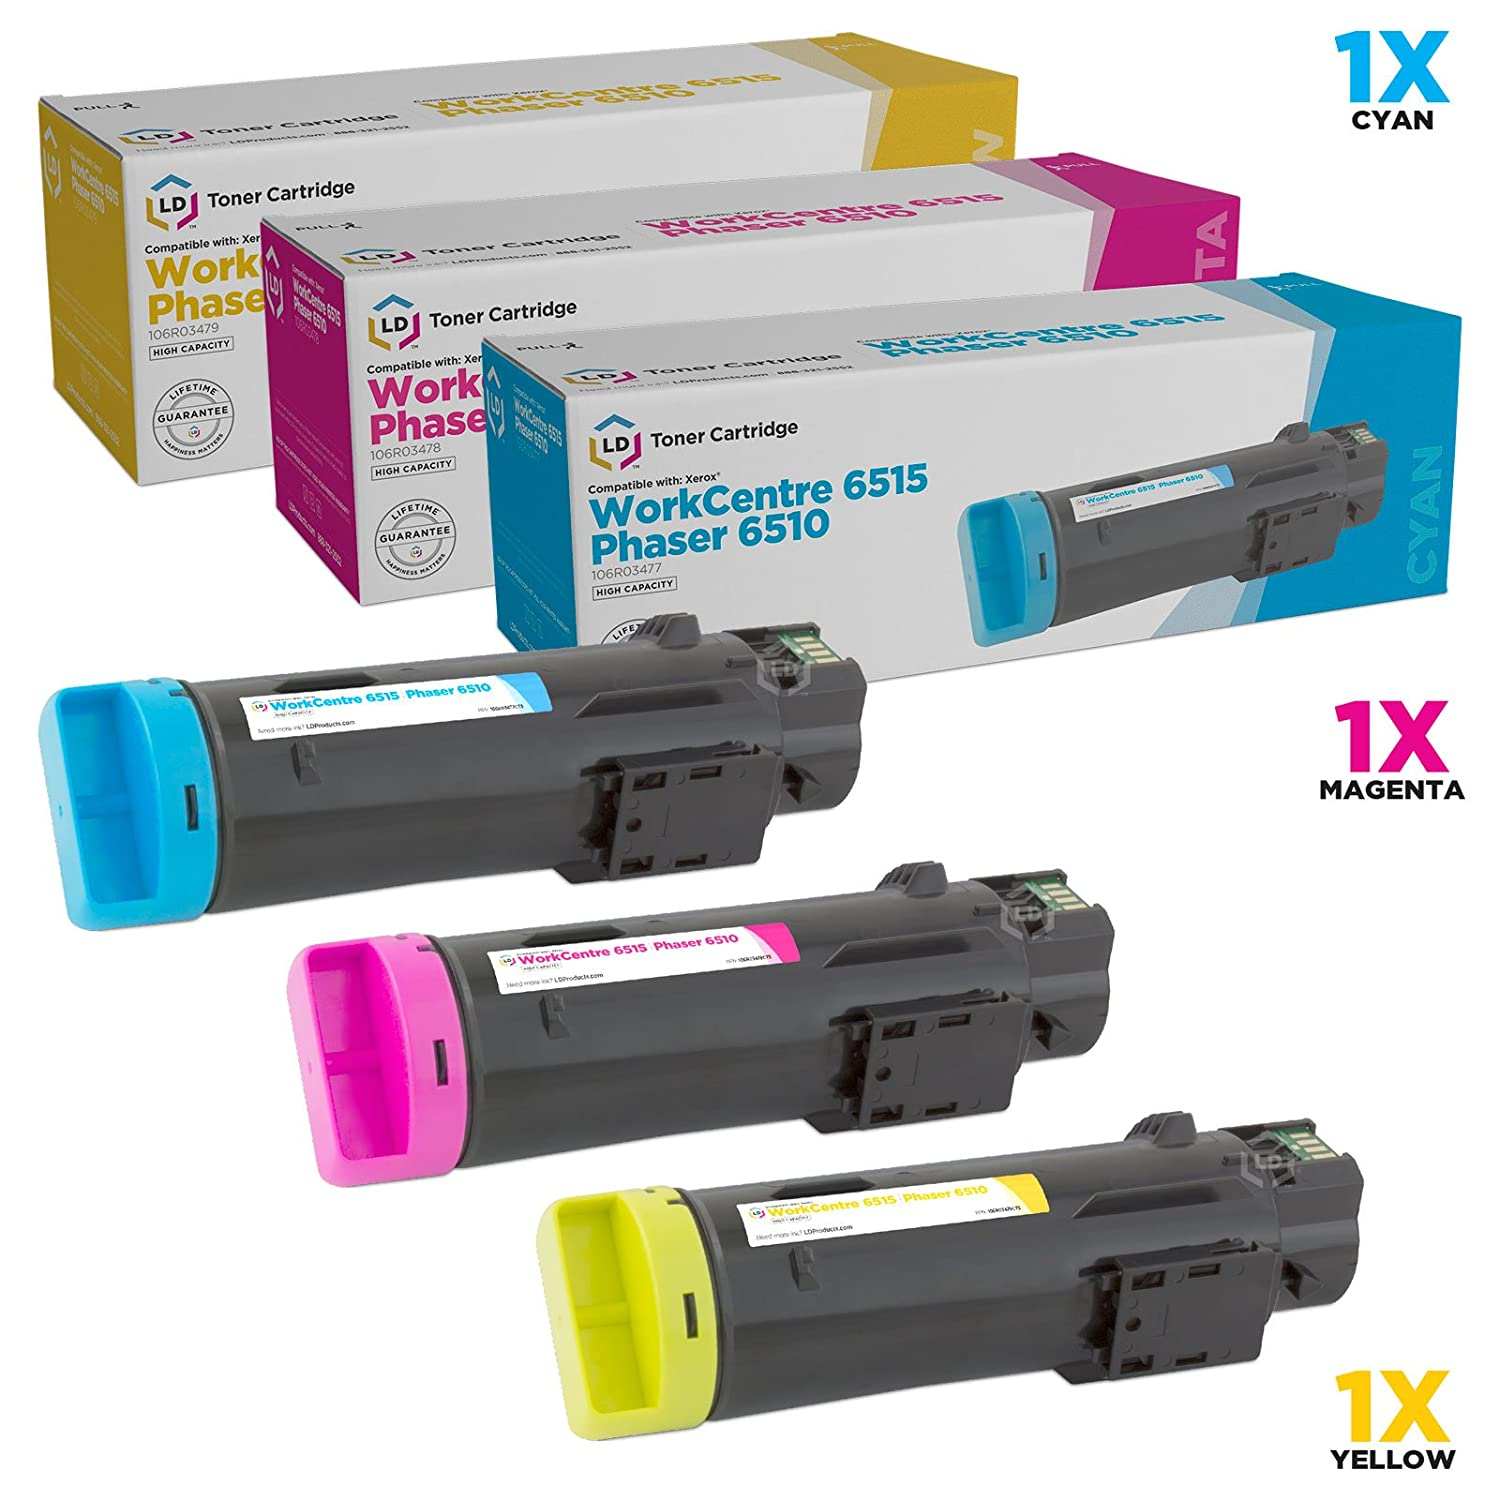 LD Compatible Xerox Phaser 6510/WorkCentre 6515 Set of 3 High-Yield Toner Cartridges: 106R03477 Cyan, 106R03478 Magenta & 106R03479 Yellow